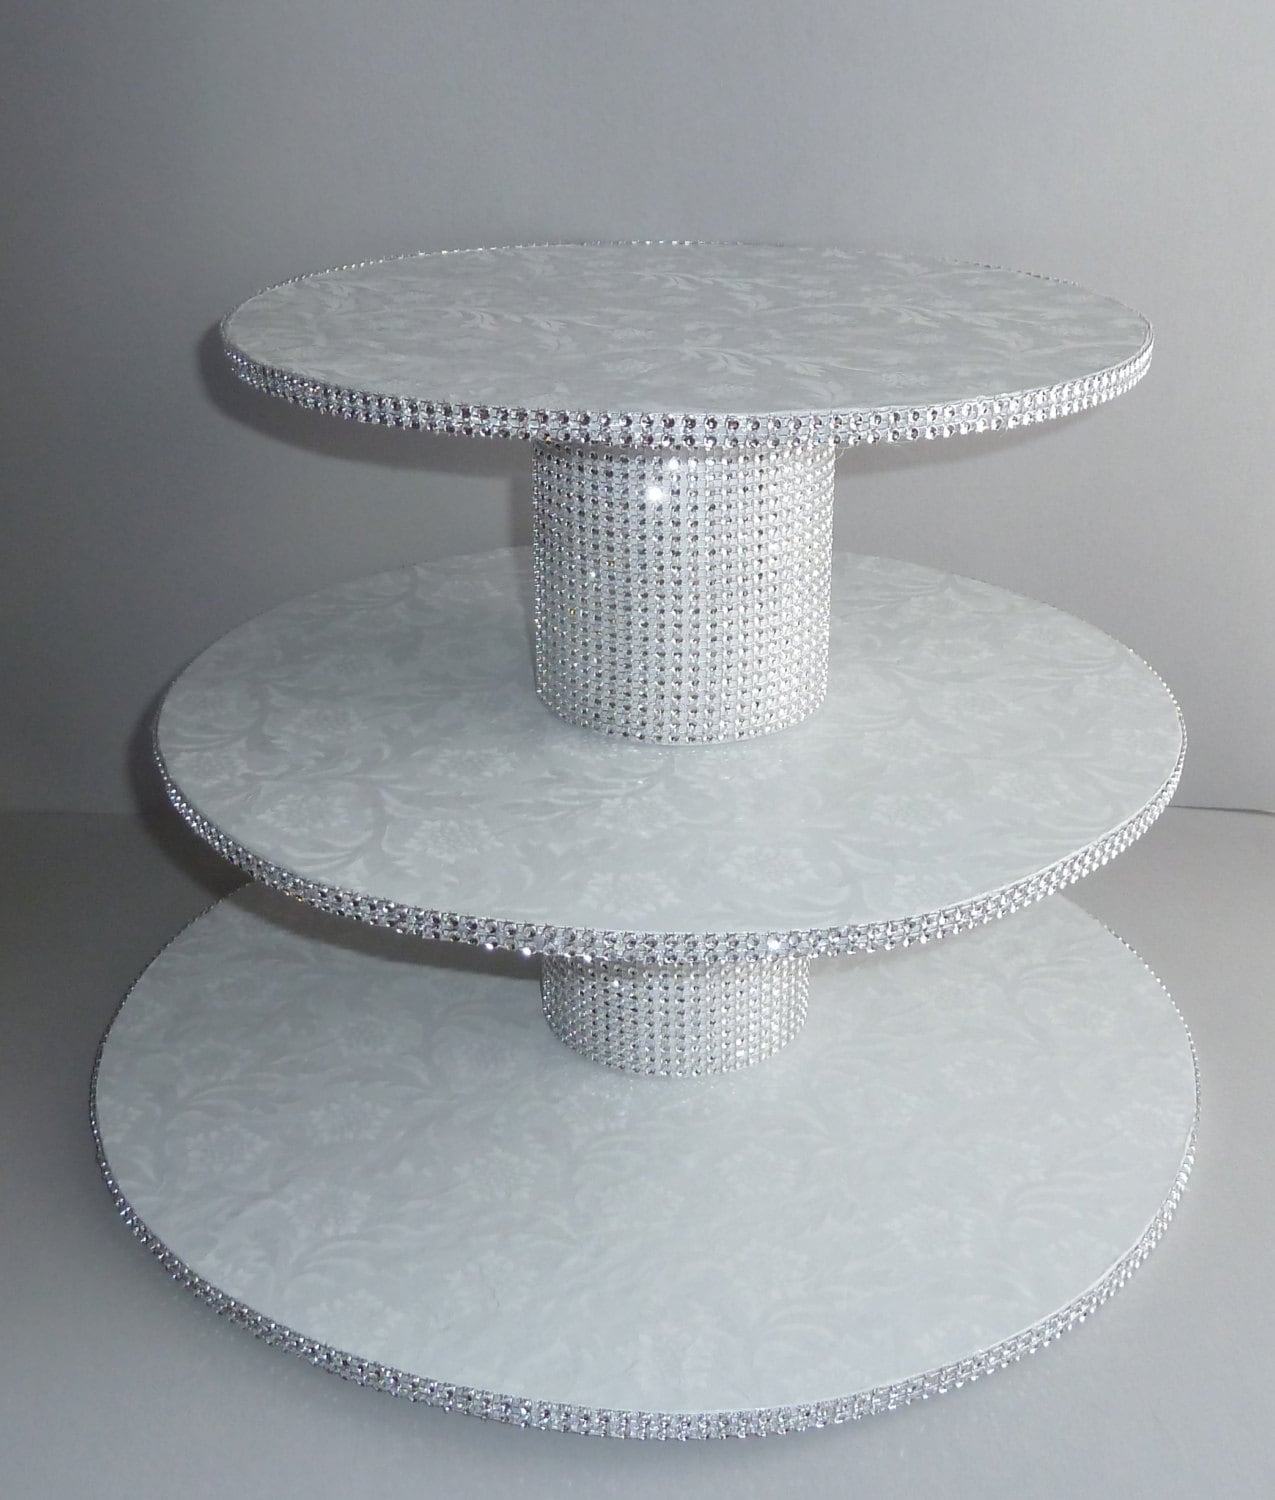 3 Tier Bling White Wedding Cake Cupcake Stand Tower Display